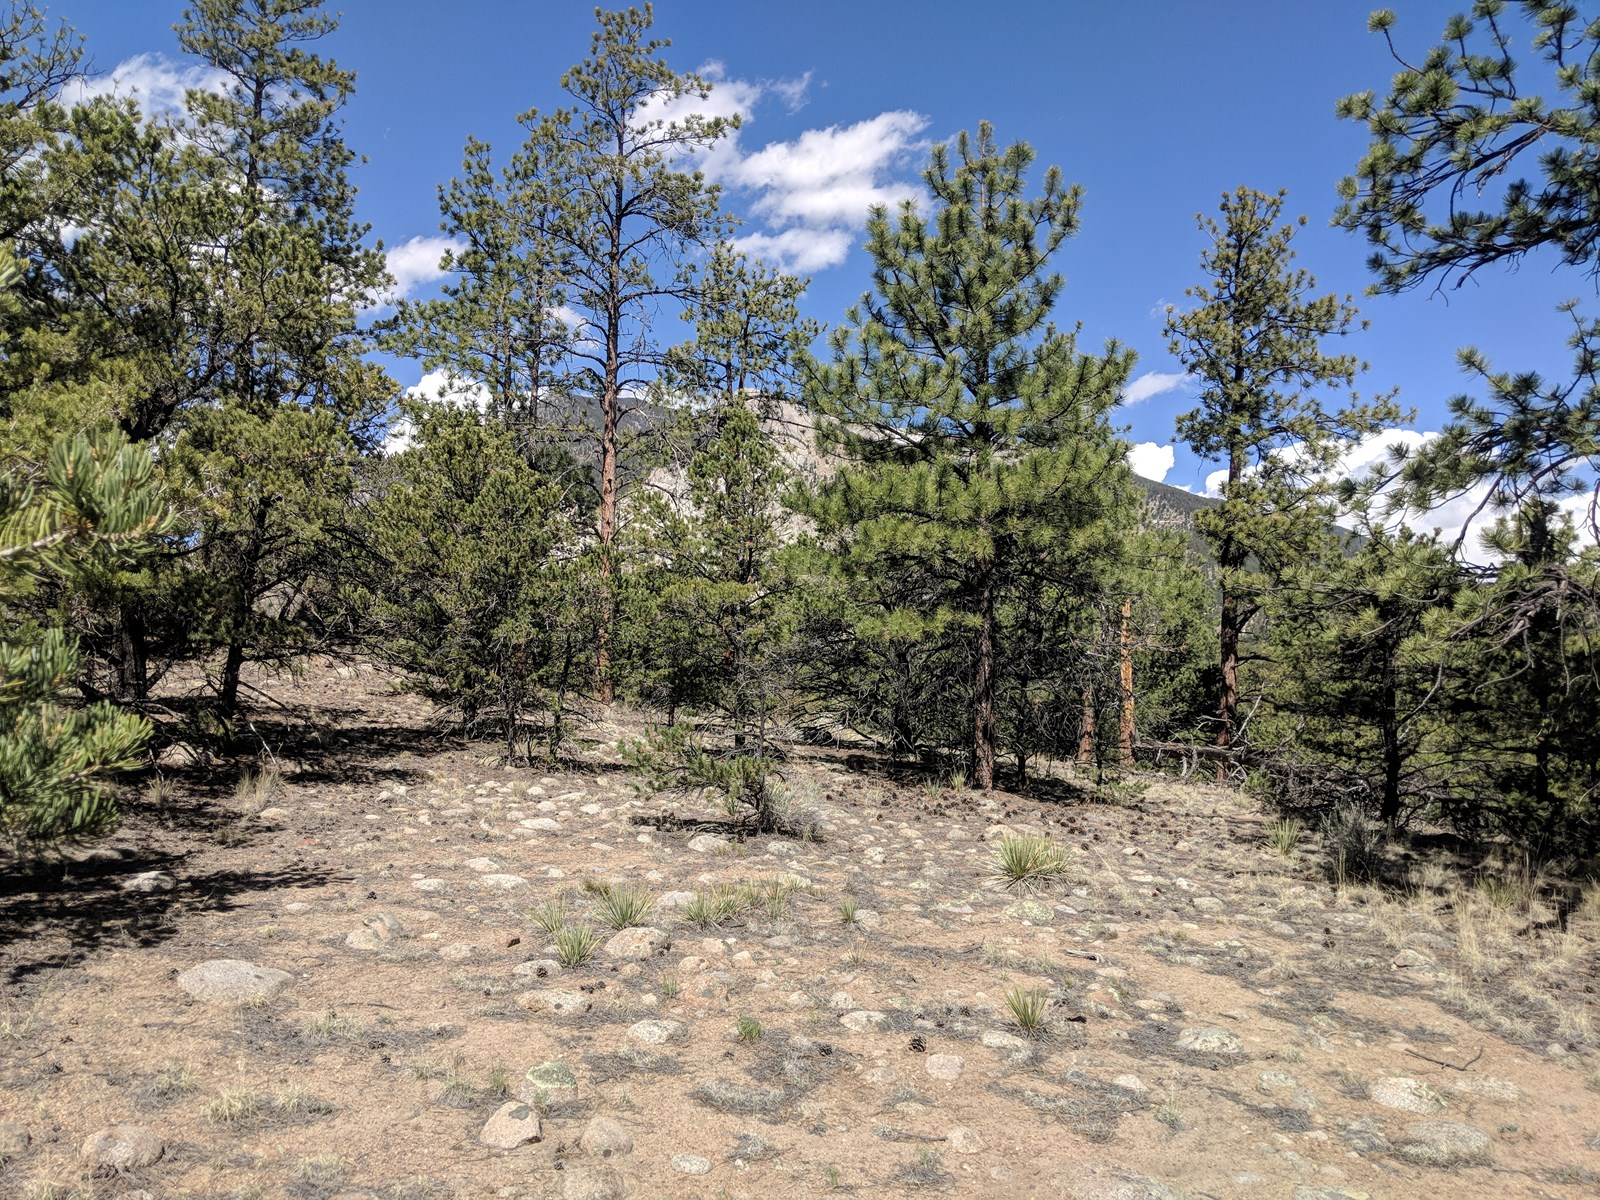 Land For Sale Mountain Mt. Princeton Chalk Cliffs Views